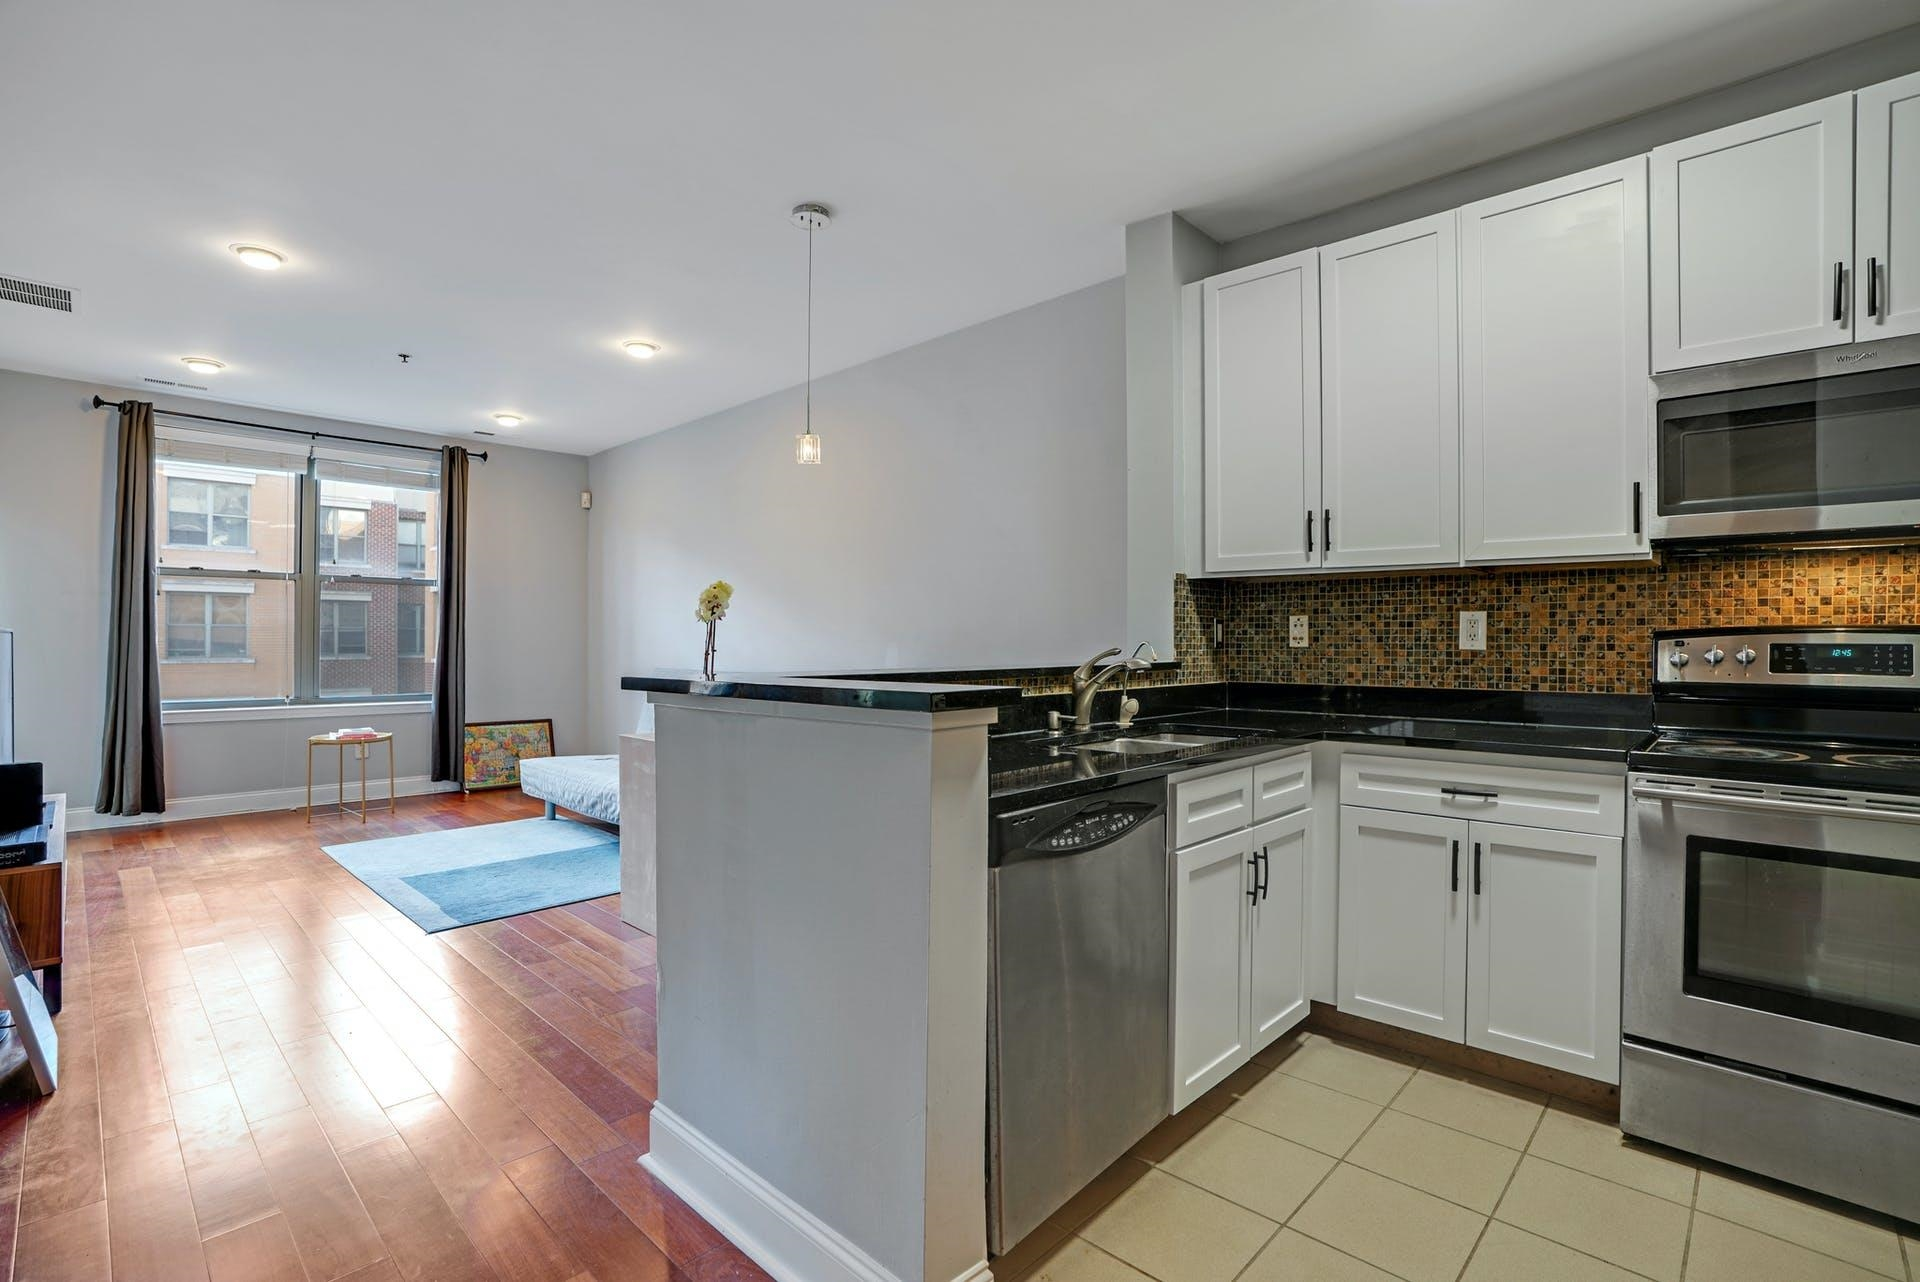 26 AVENUE AT PORT IMPERIAL 329, West New York, NJ 07093